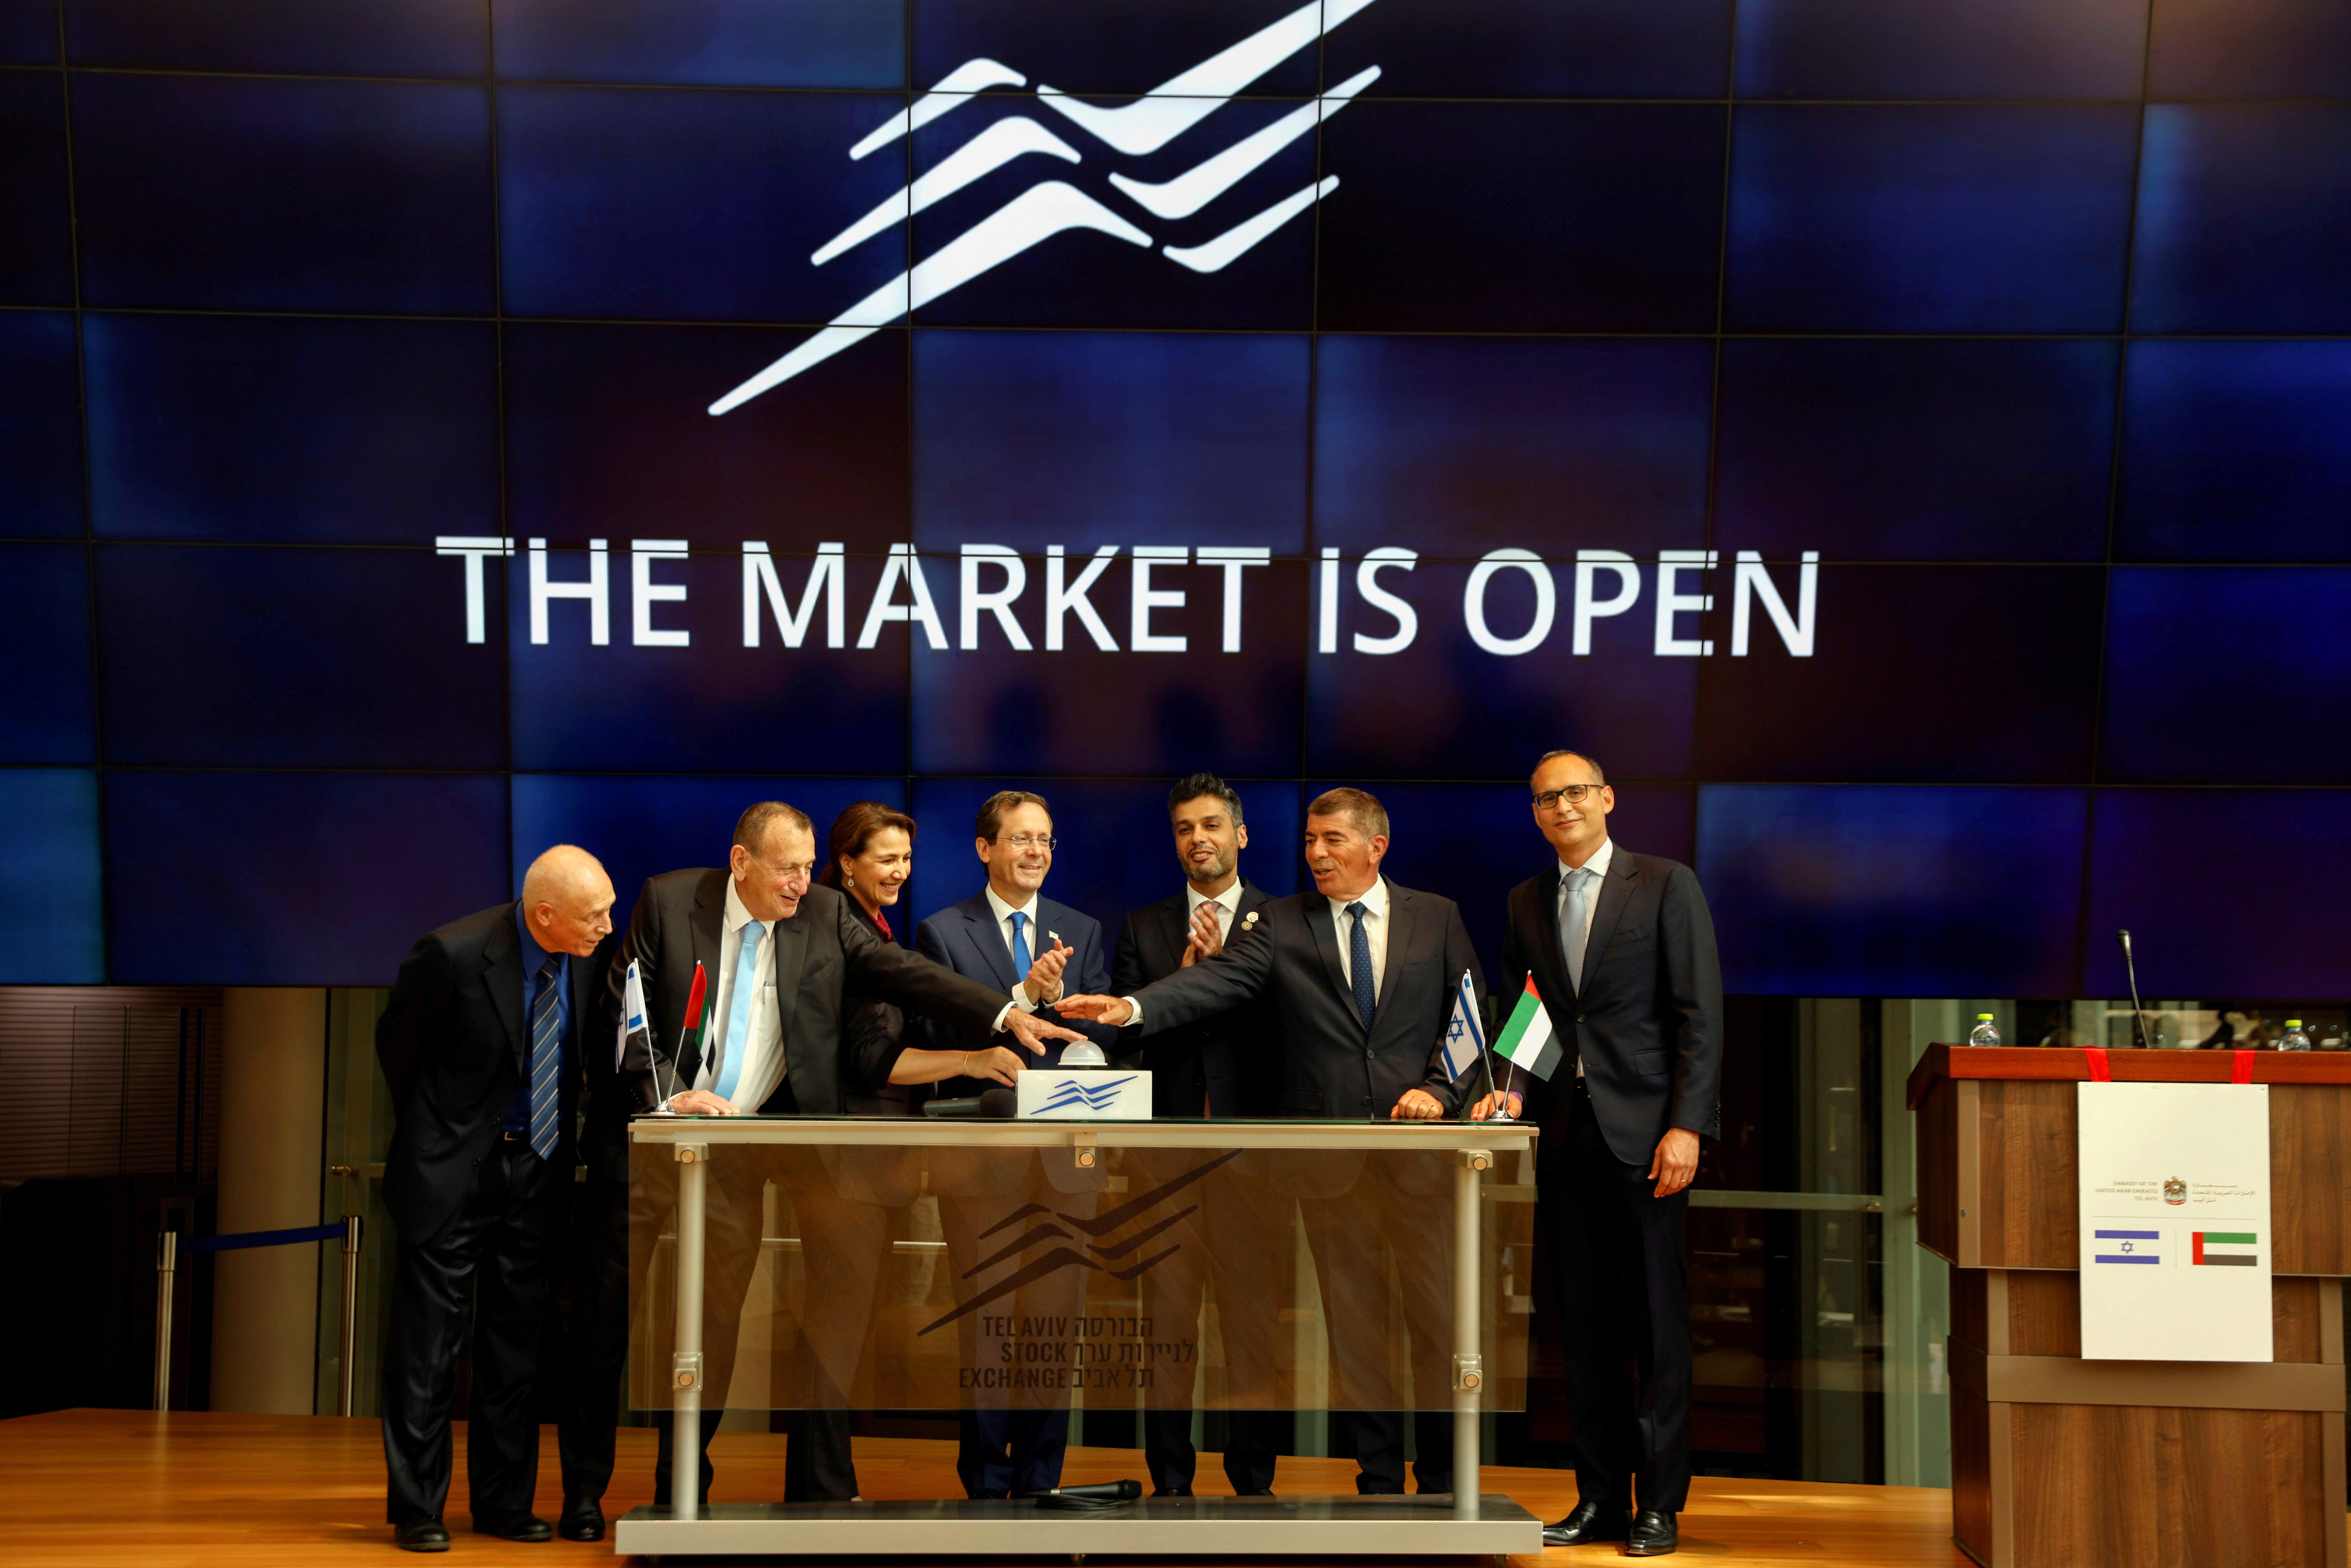 UAE Ambassador to Israel, Mohamed Al Khaja, and Israeli President Isaac Herzog clap as other officials press a button to start the stock exchange market during the opening ceremony of the Emirati embassy in Tel Aviv, Israel July 14, 2021. REUTERS/Amir Cohen/File Photo